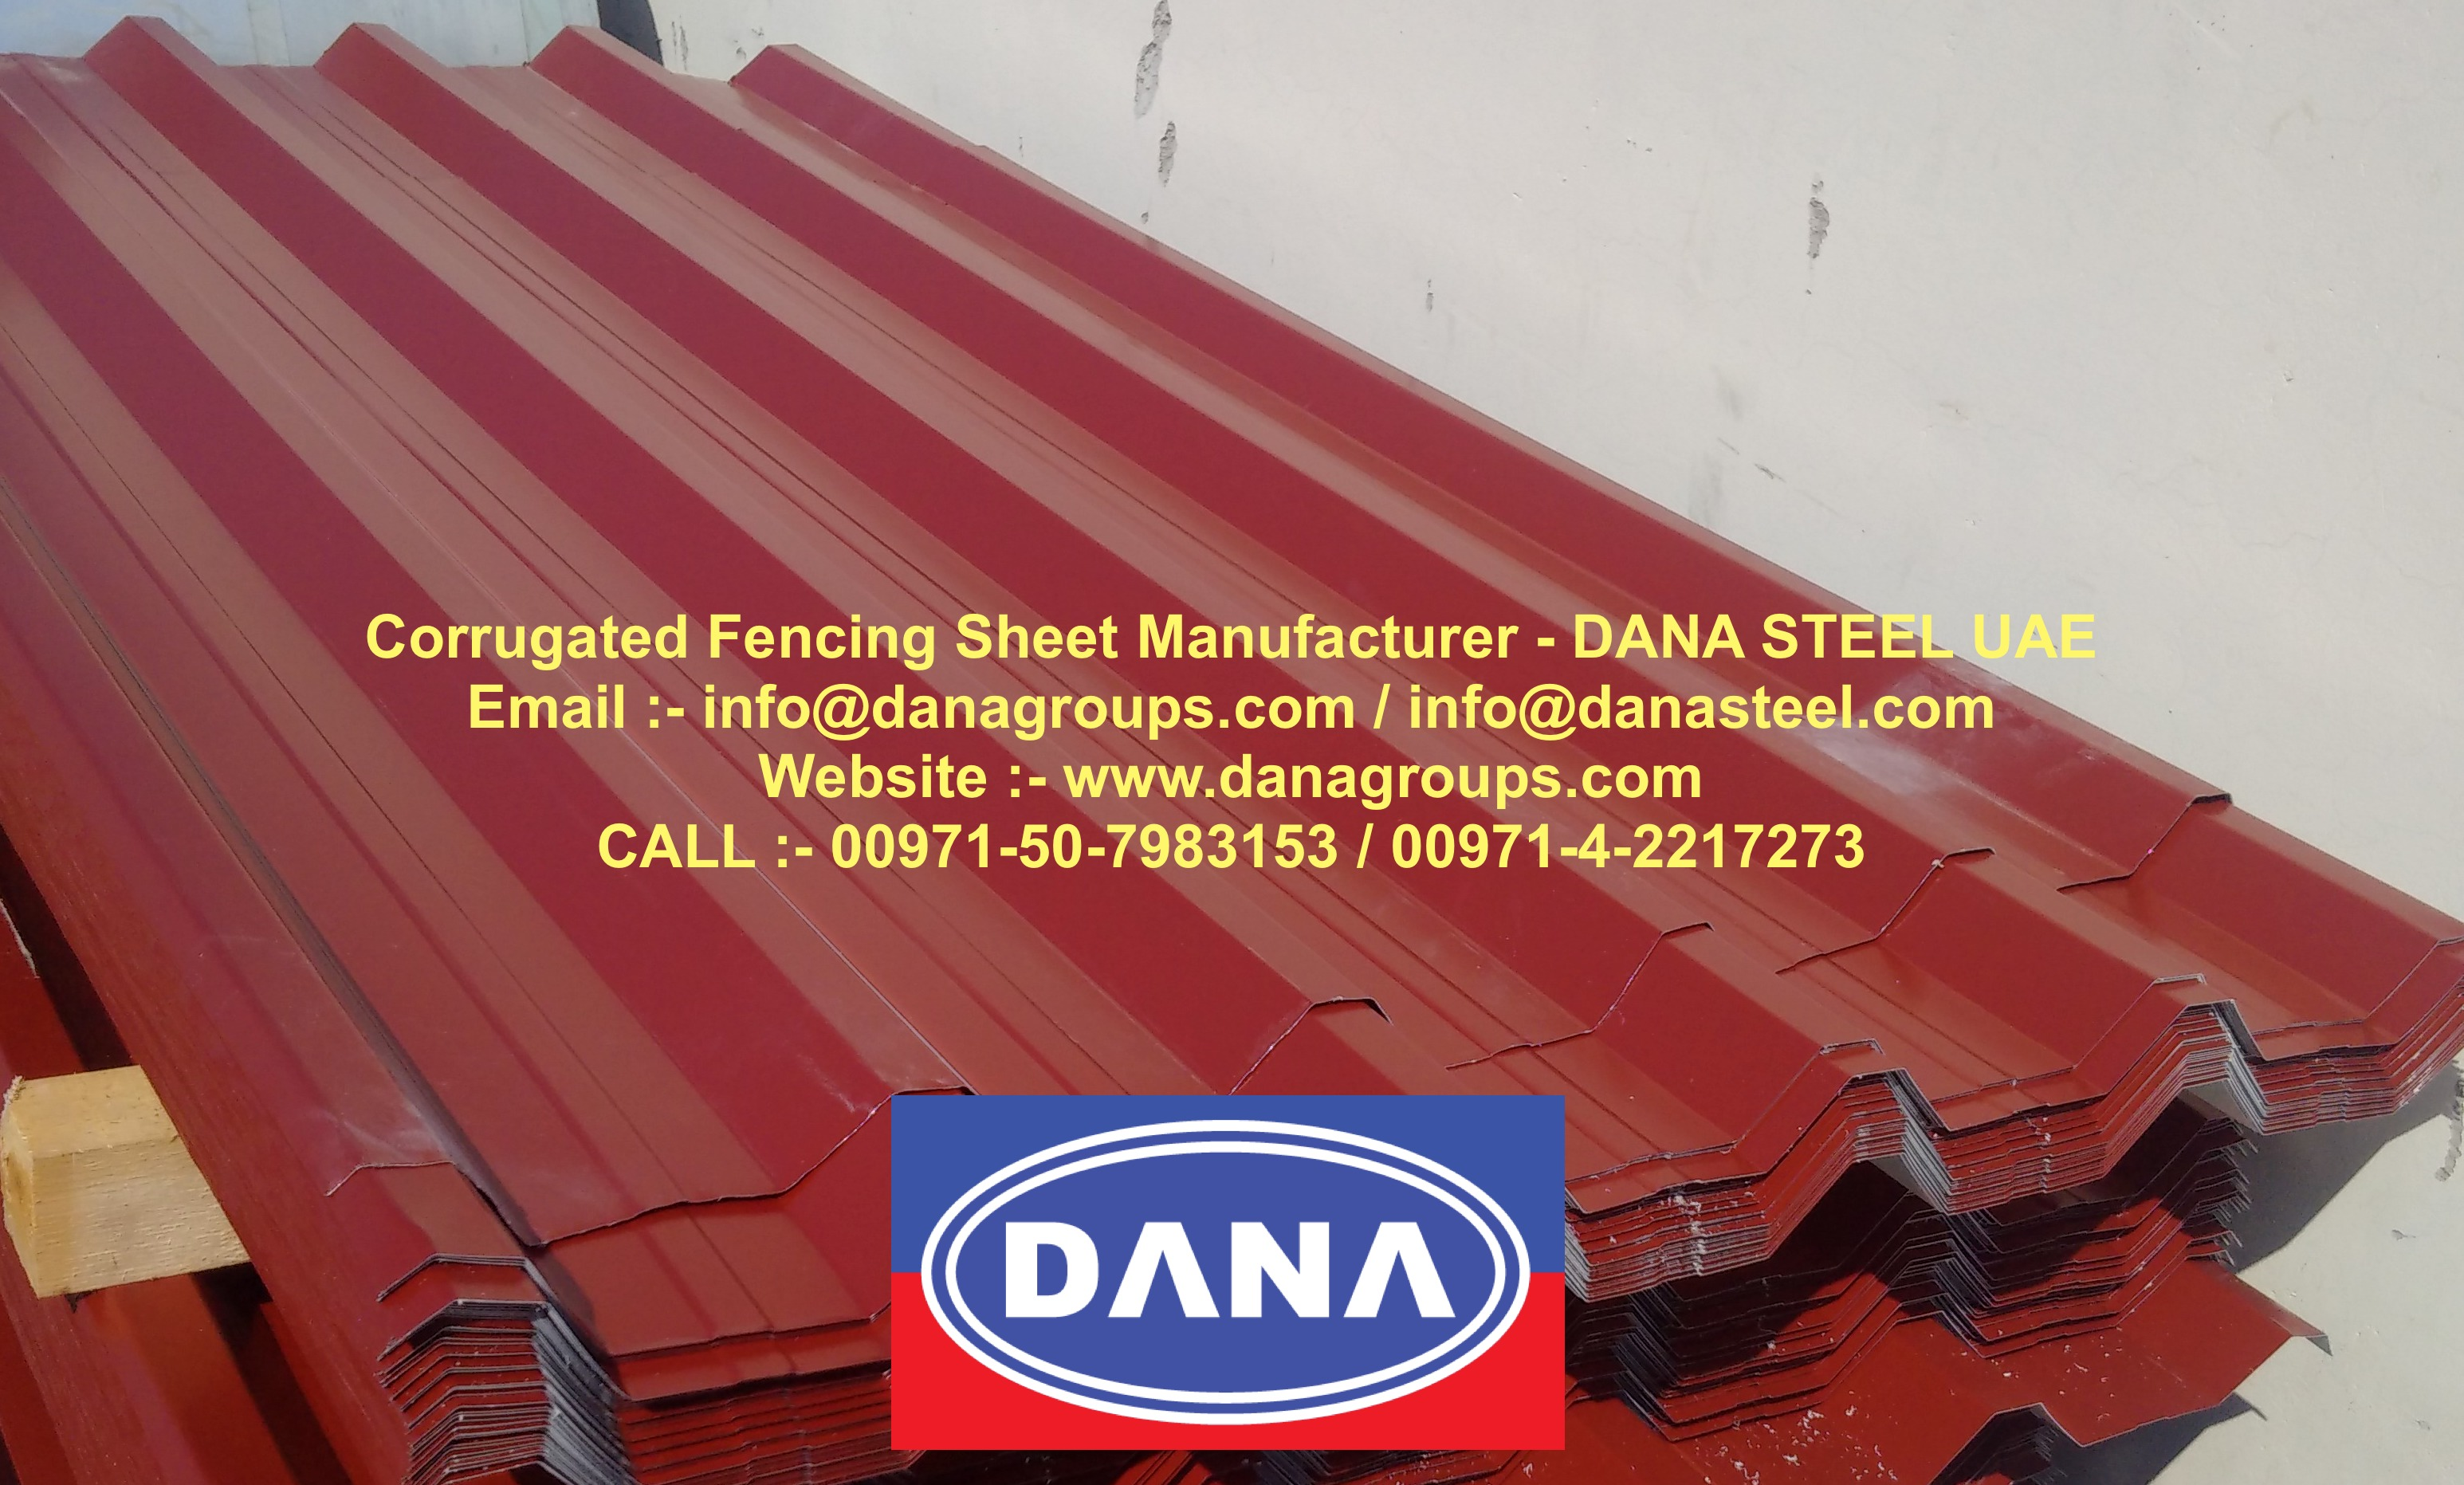 Oxide Red Corrugated Fencing Sheet Uae Manufacturer Dana